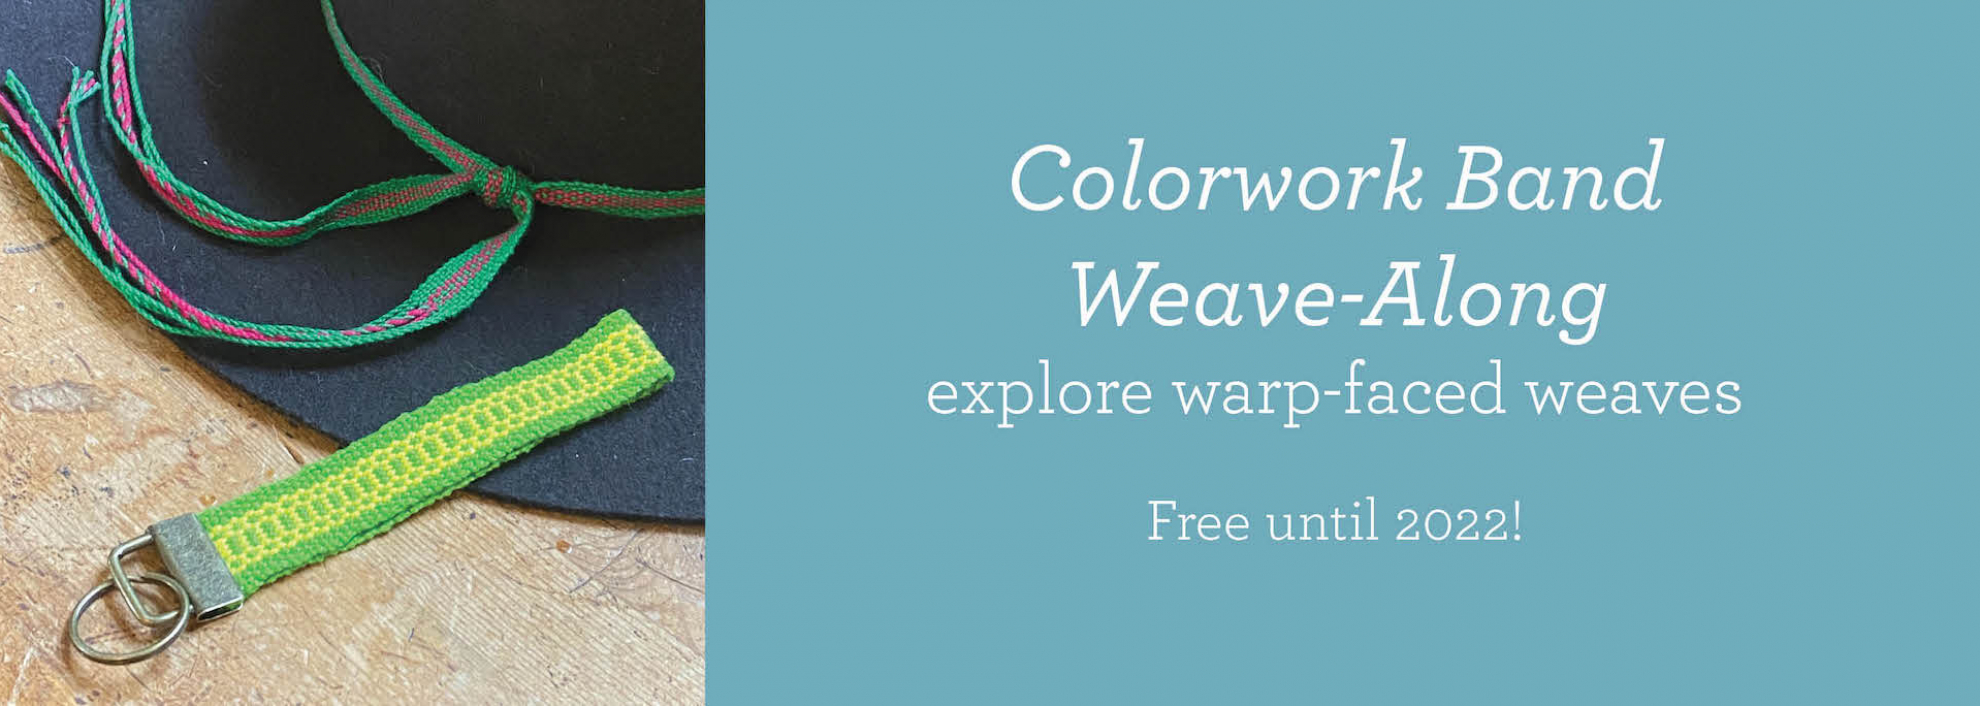 Colorwork Band WAL available until 2022